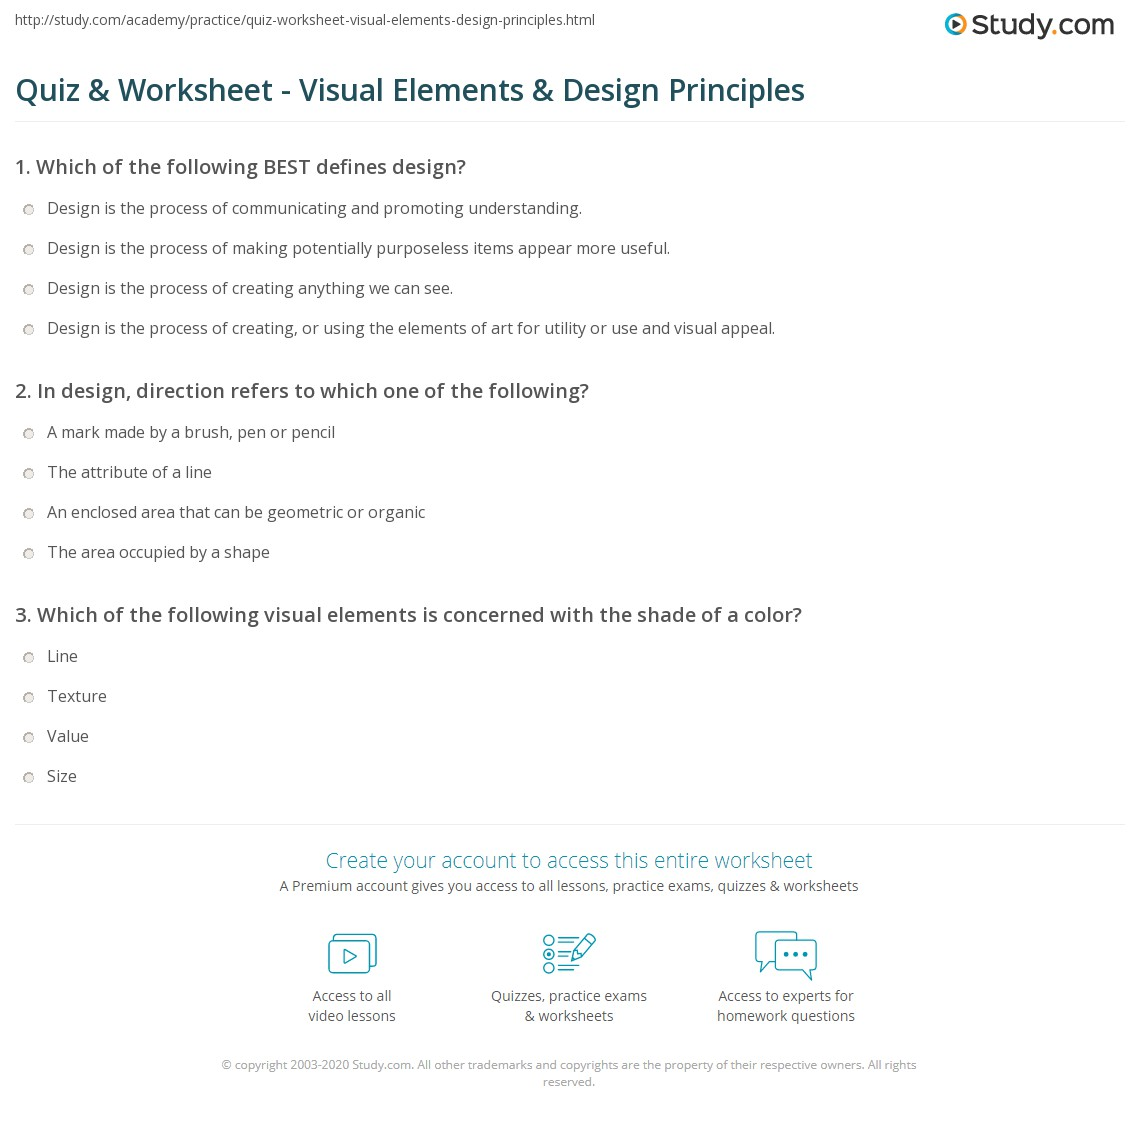 Quiz & Worksheet - Visual Elements & Design Principles | Study.com